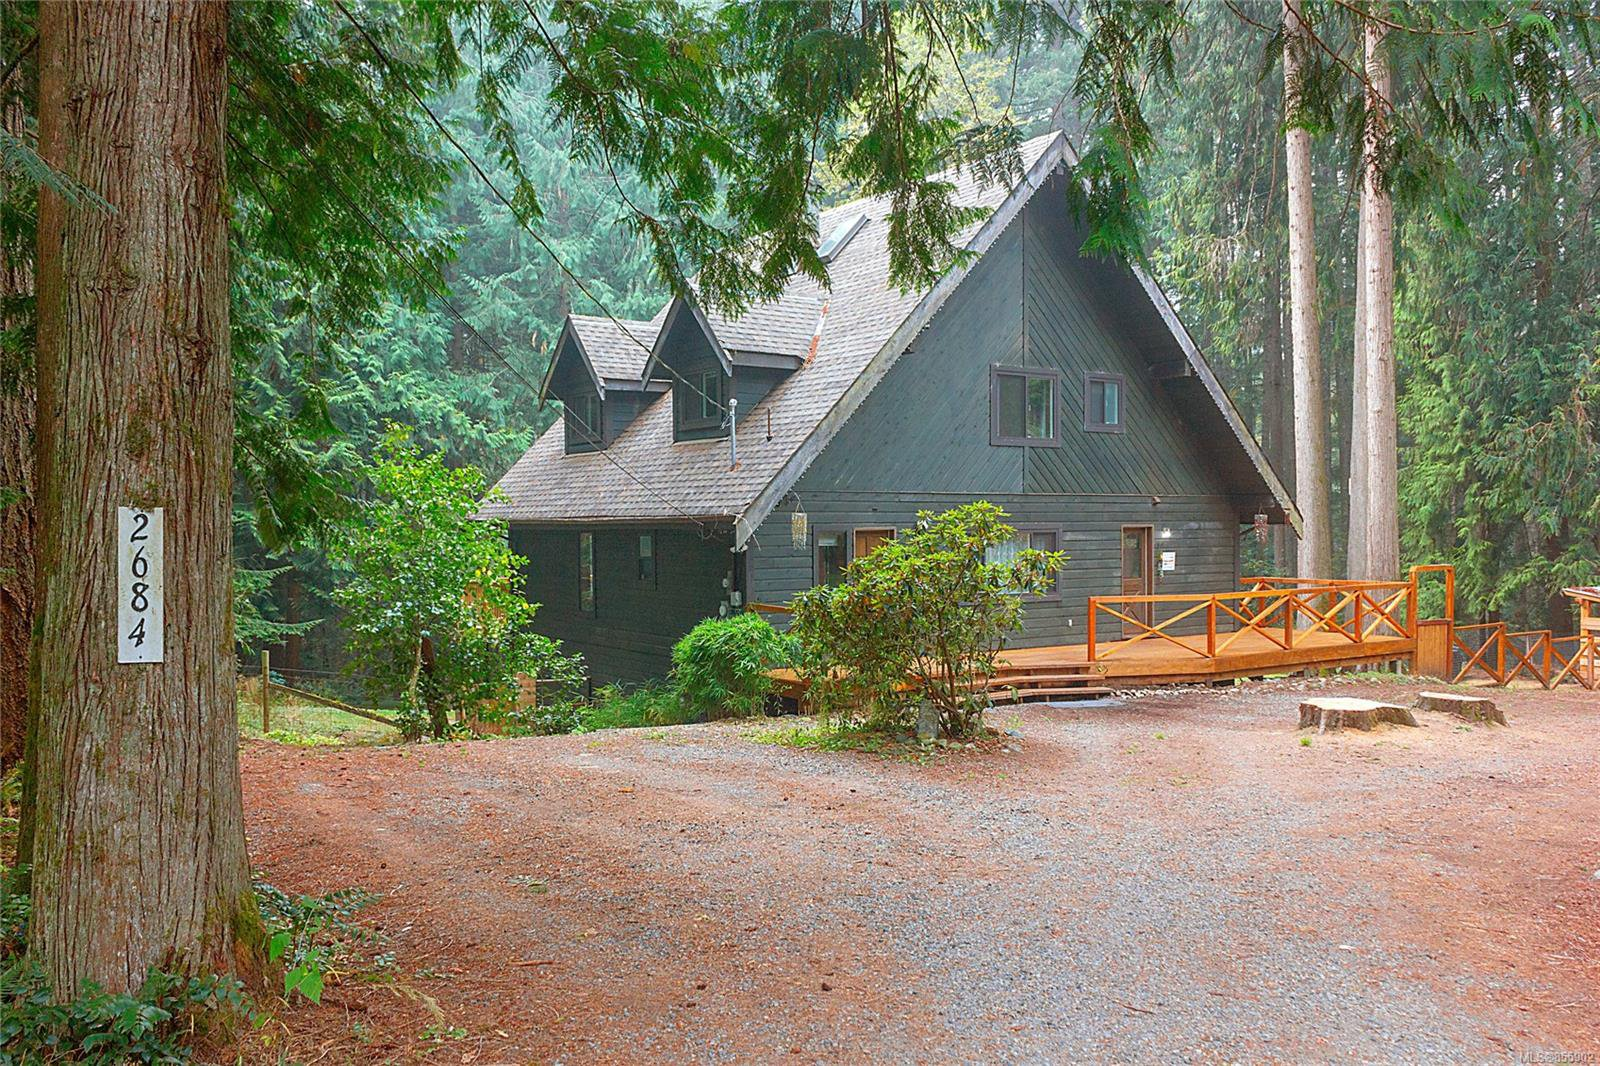 Main Photo: 2684 Sunny Glades Lane in : ML Shawnigan Single Family Detached for sale (Malahat & Area)  : MLS®# 855902